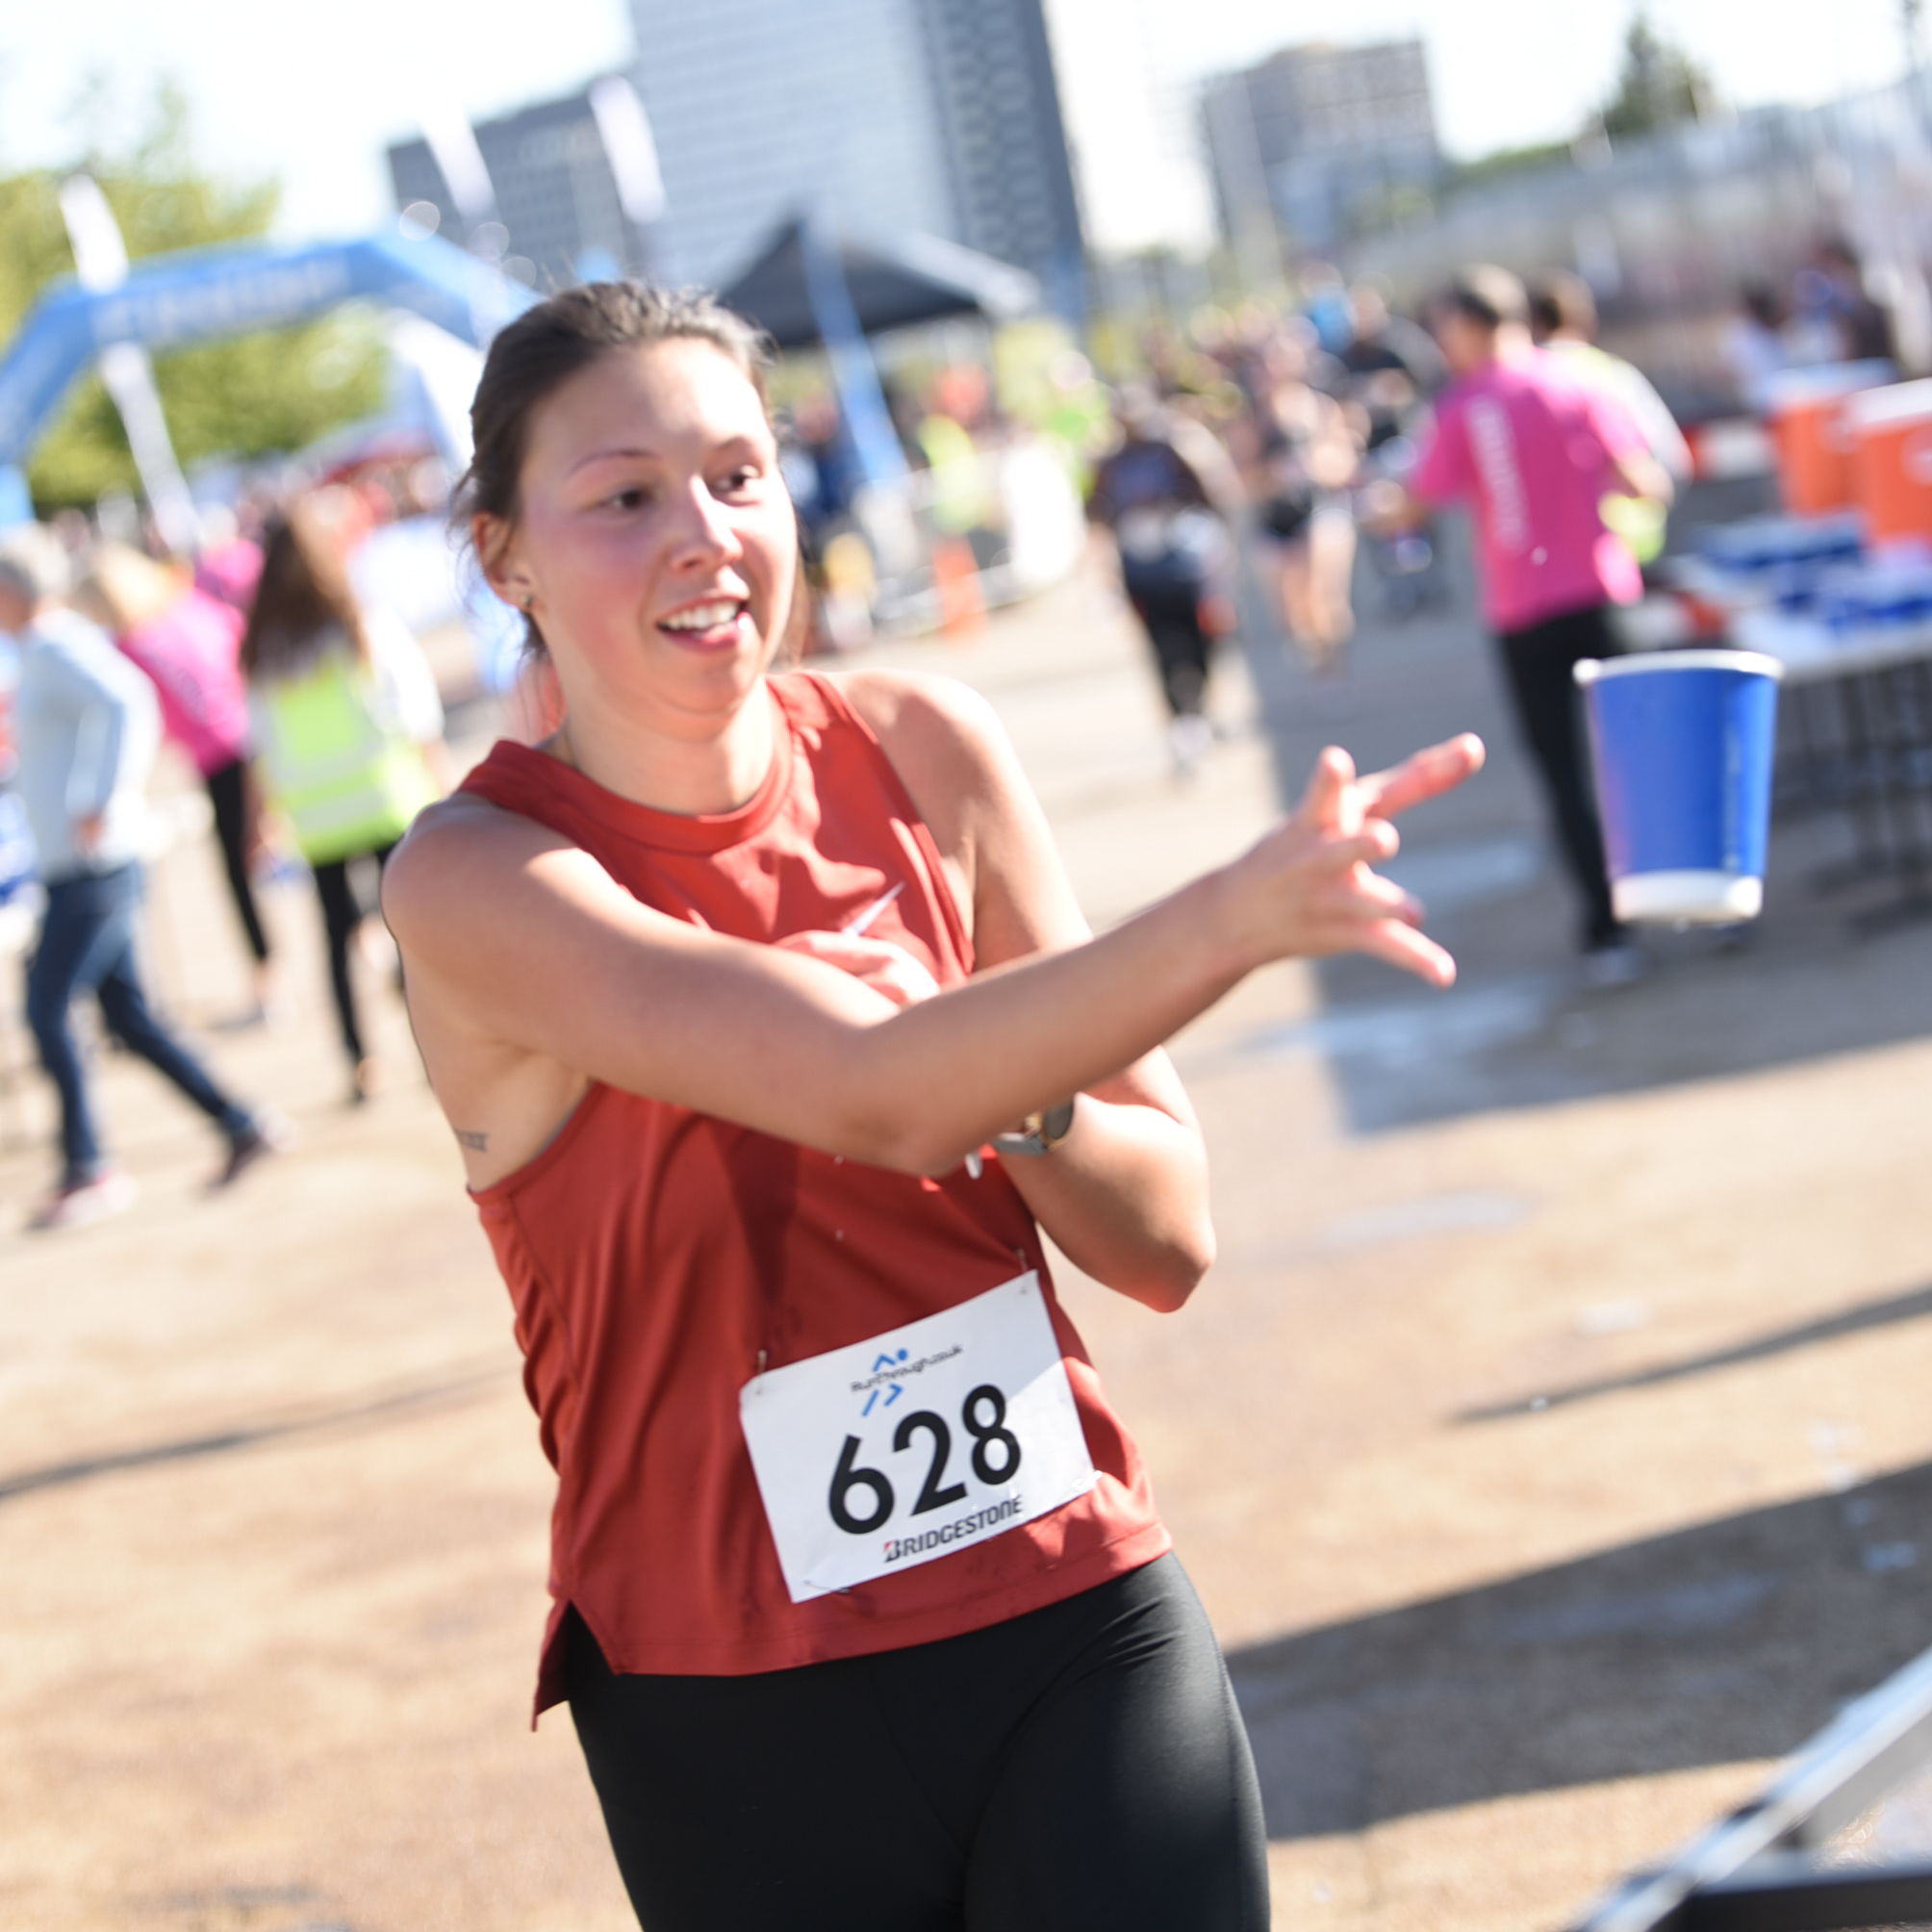 Frugal Cups offered to London runners at Olympic Park run